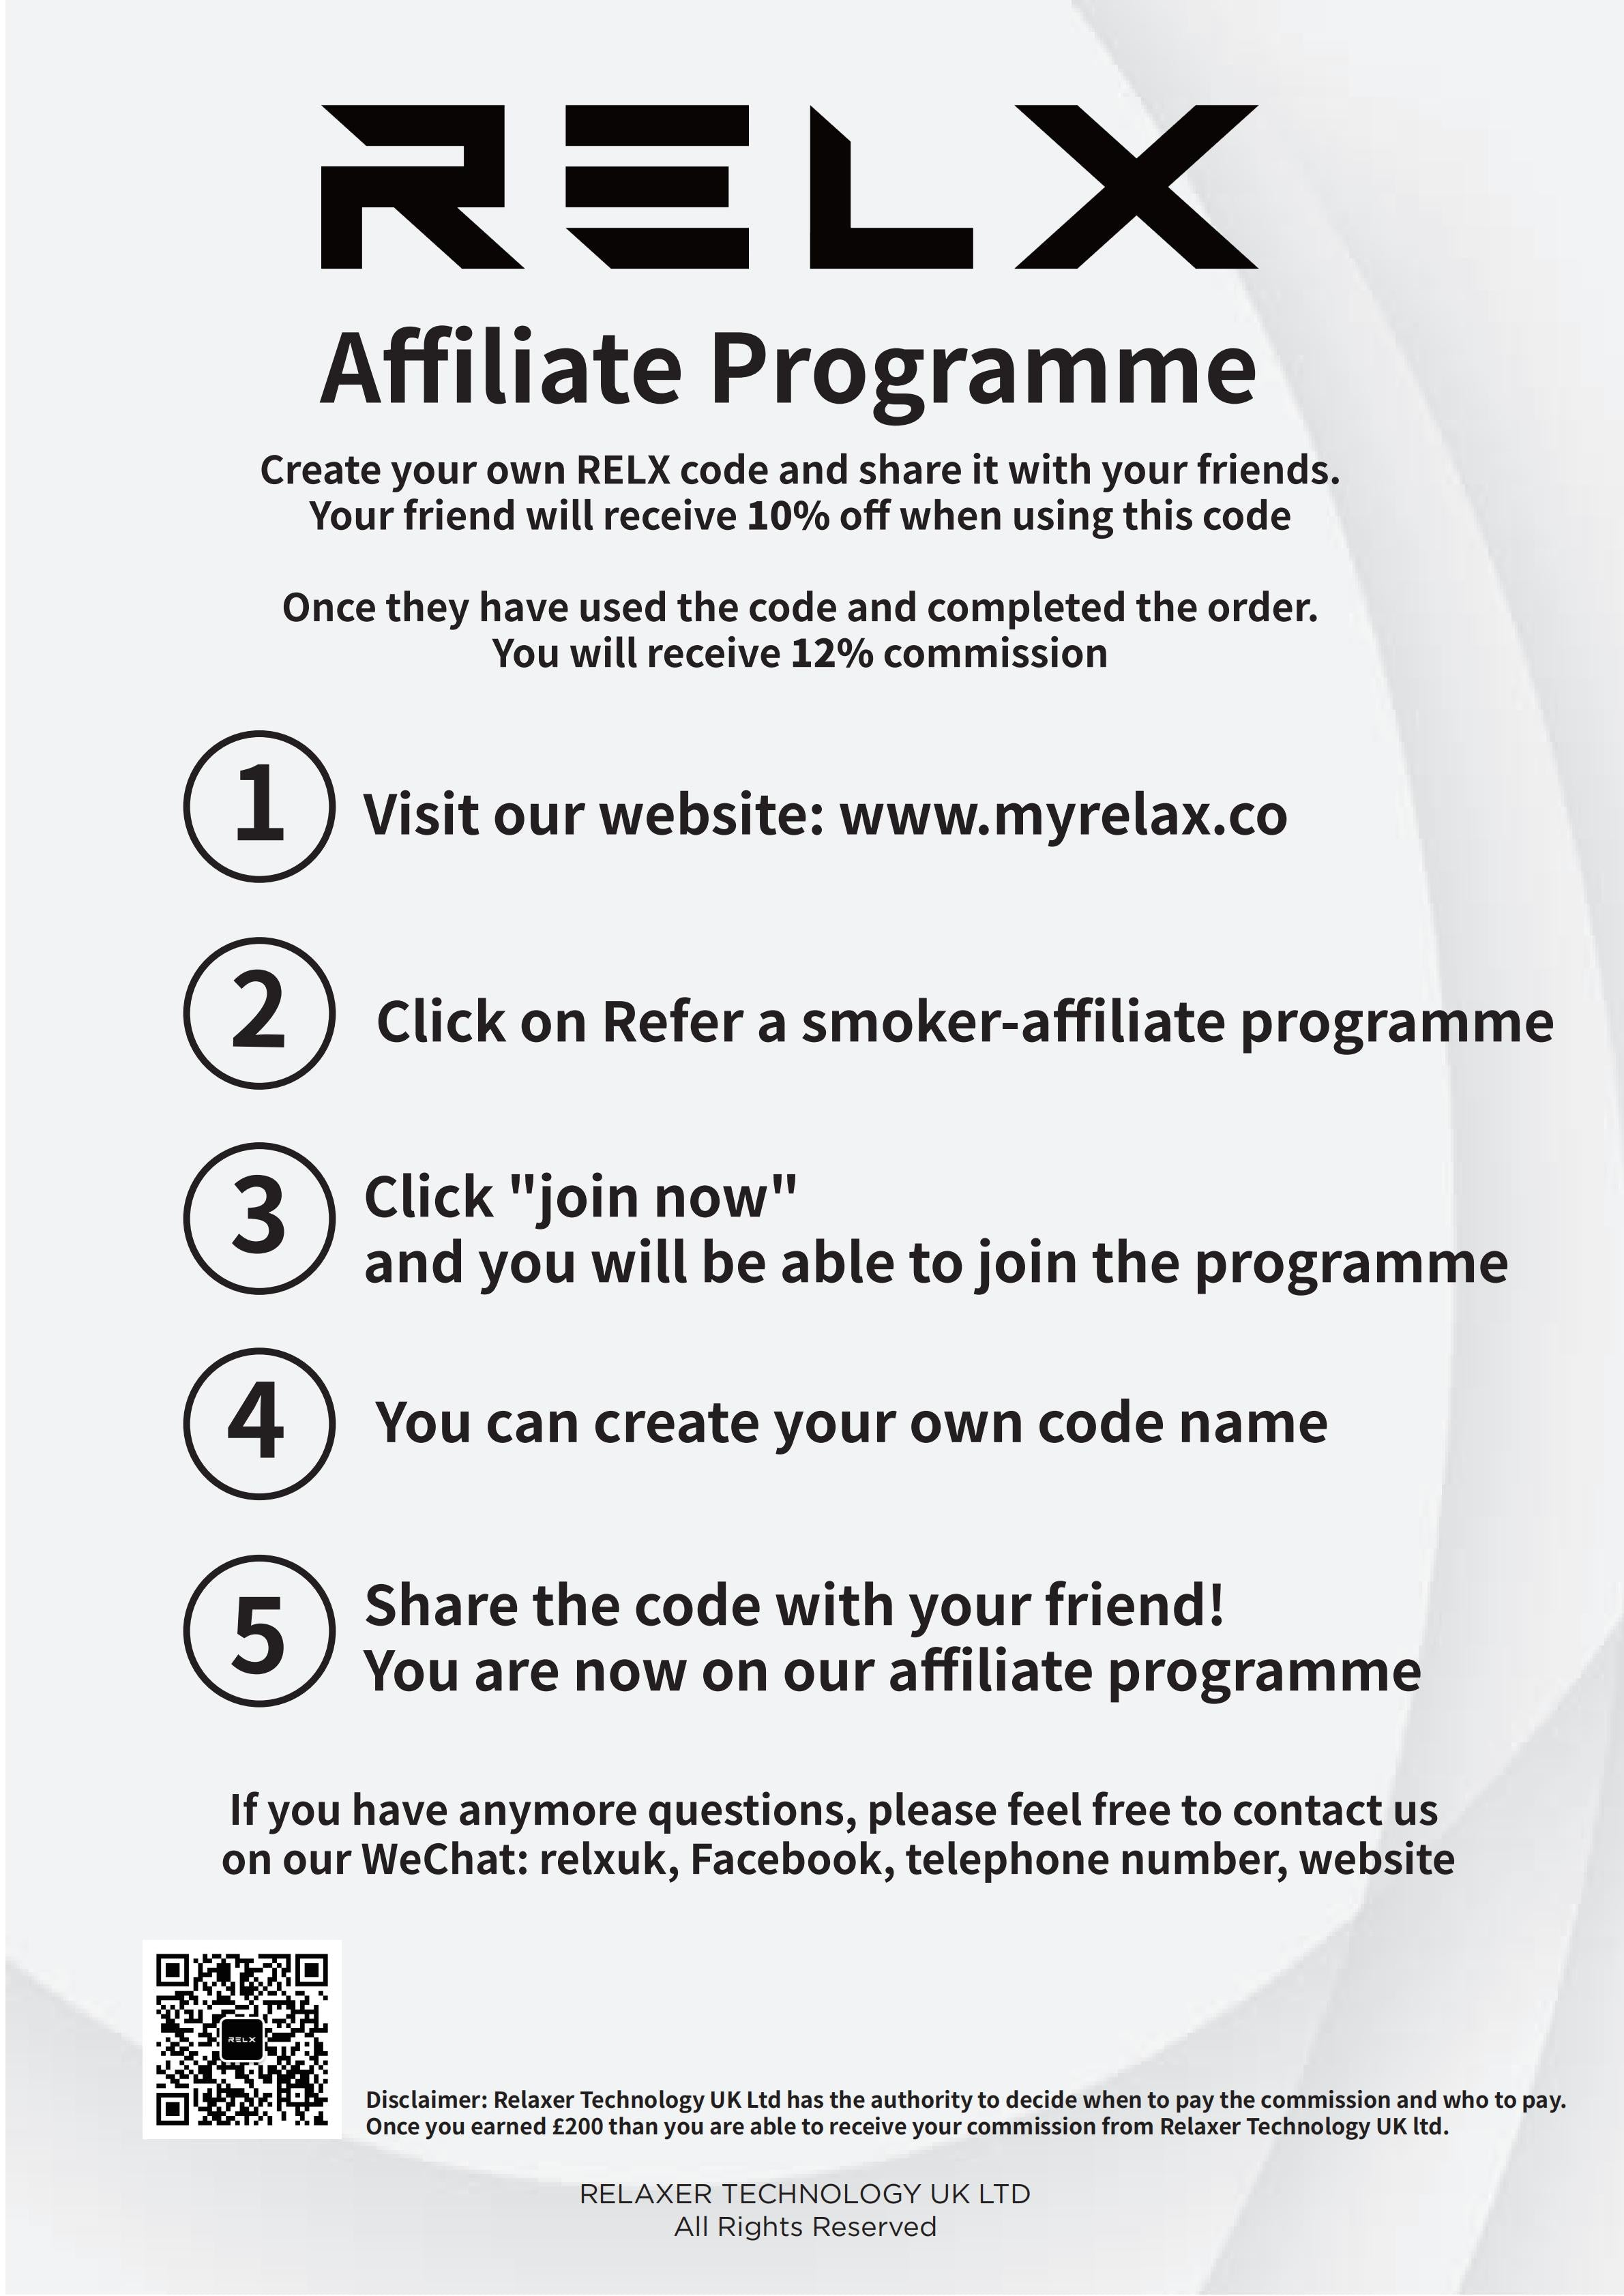 join the RELX AFFILIATE PROGRAM